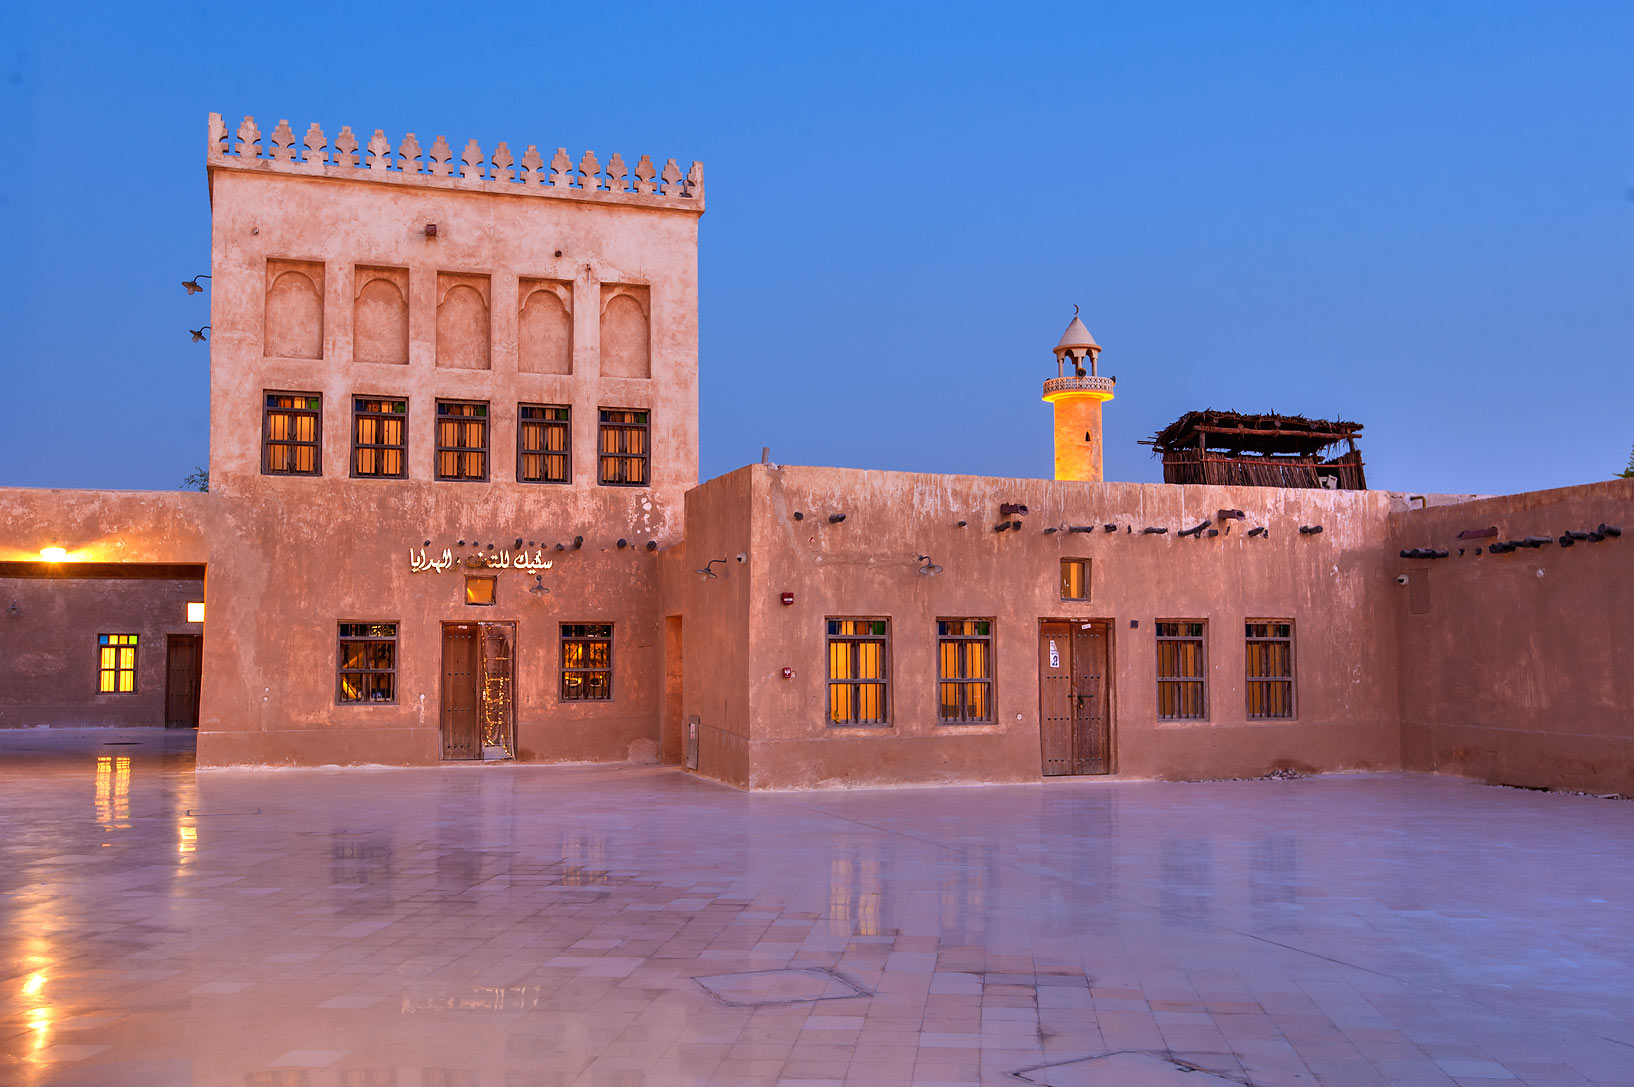 Empty stone buildings in Al Wakra Heritage Village (Souq Waqif in Al Wakrah). Qatar